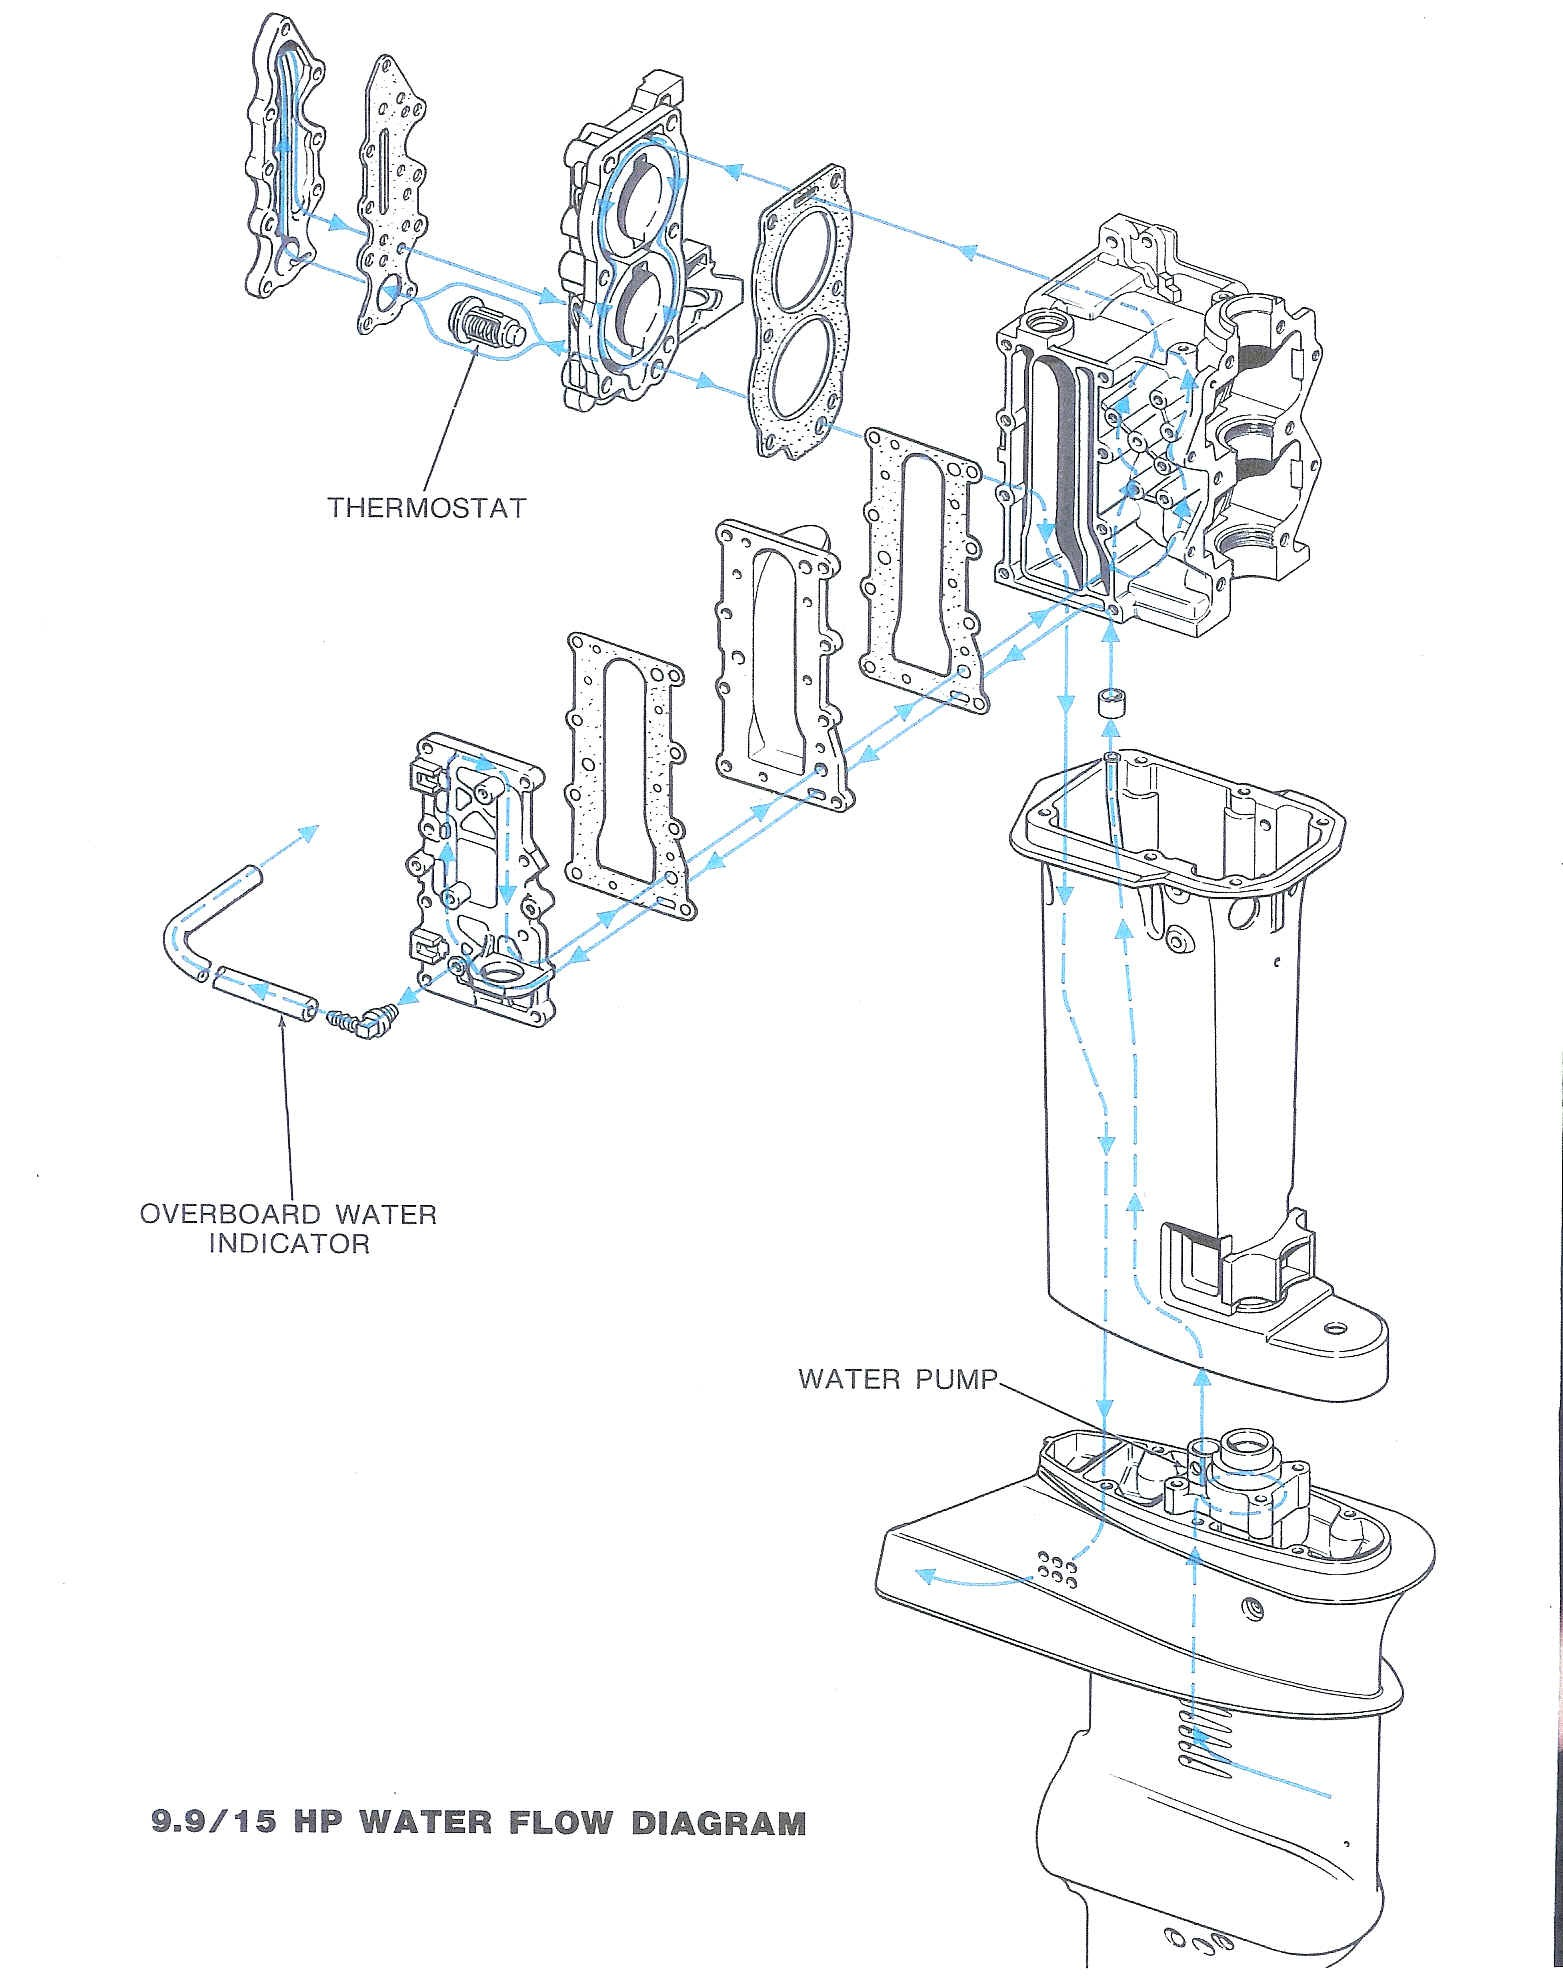 Water Cooled Engine Diagram 74 On Water Problems Of Water Cooled Engine Diagram